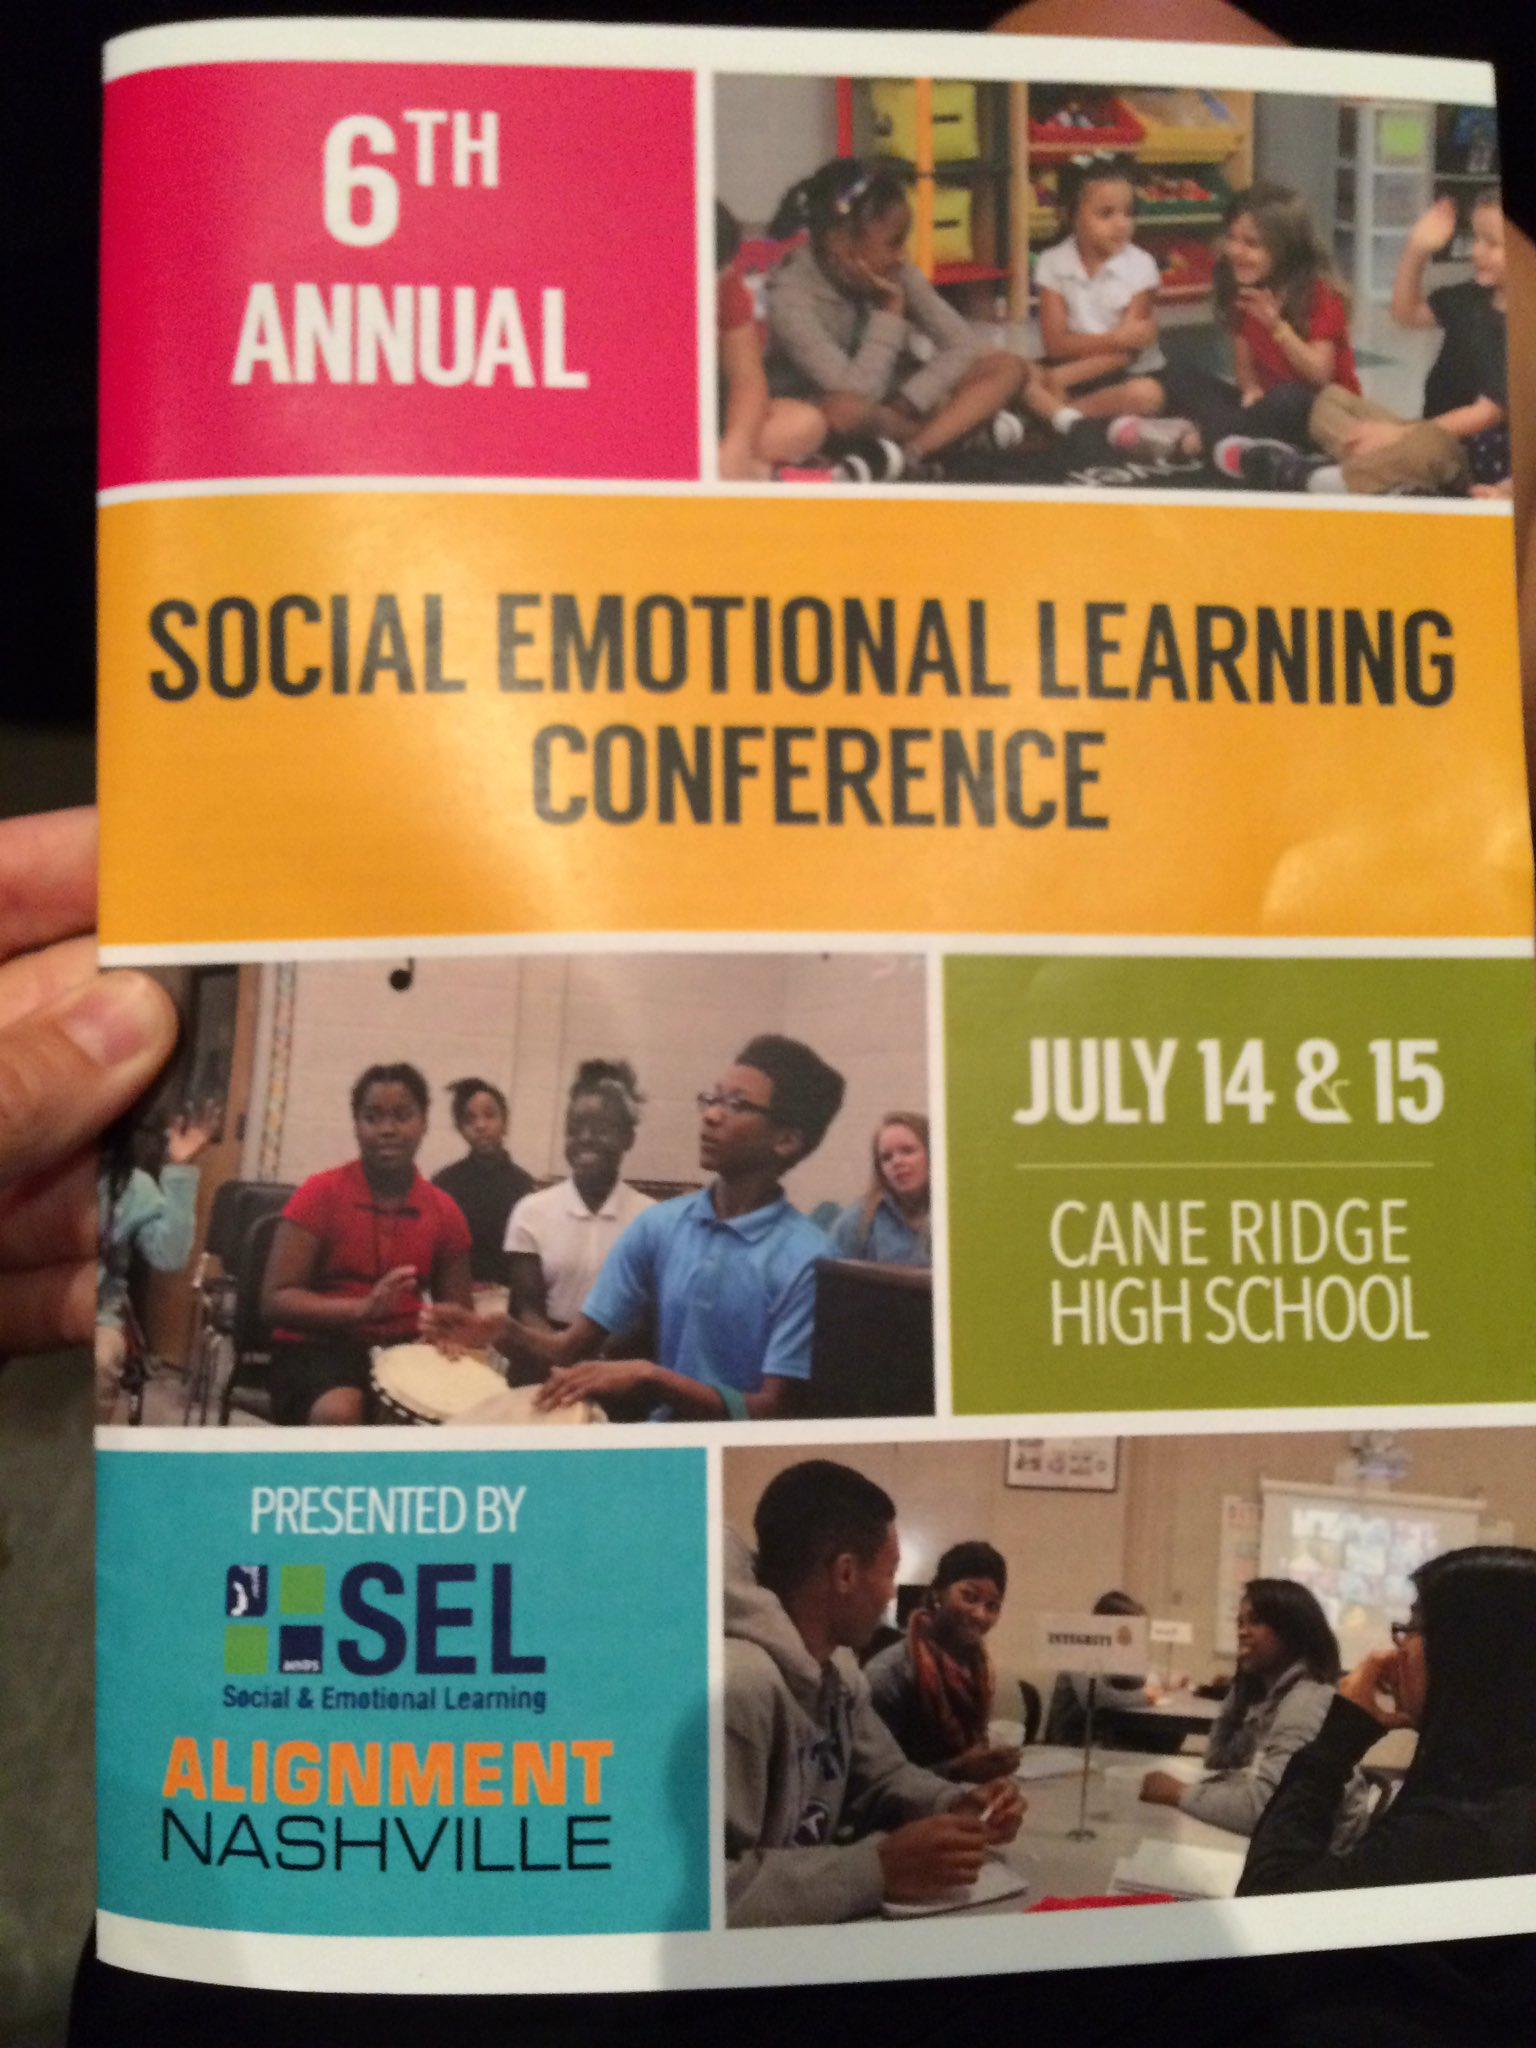 Several F-H staff are at the SEL Conference today learning how to better support our students!#selconference https://t.co/2DFVox5CDq